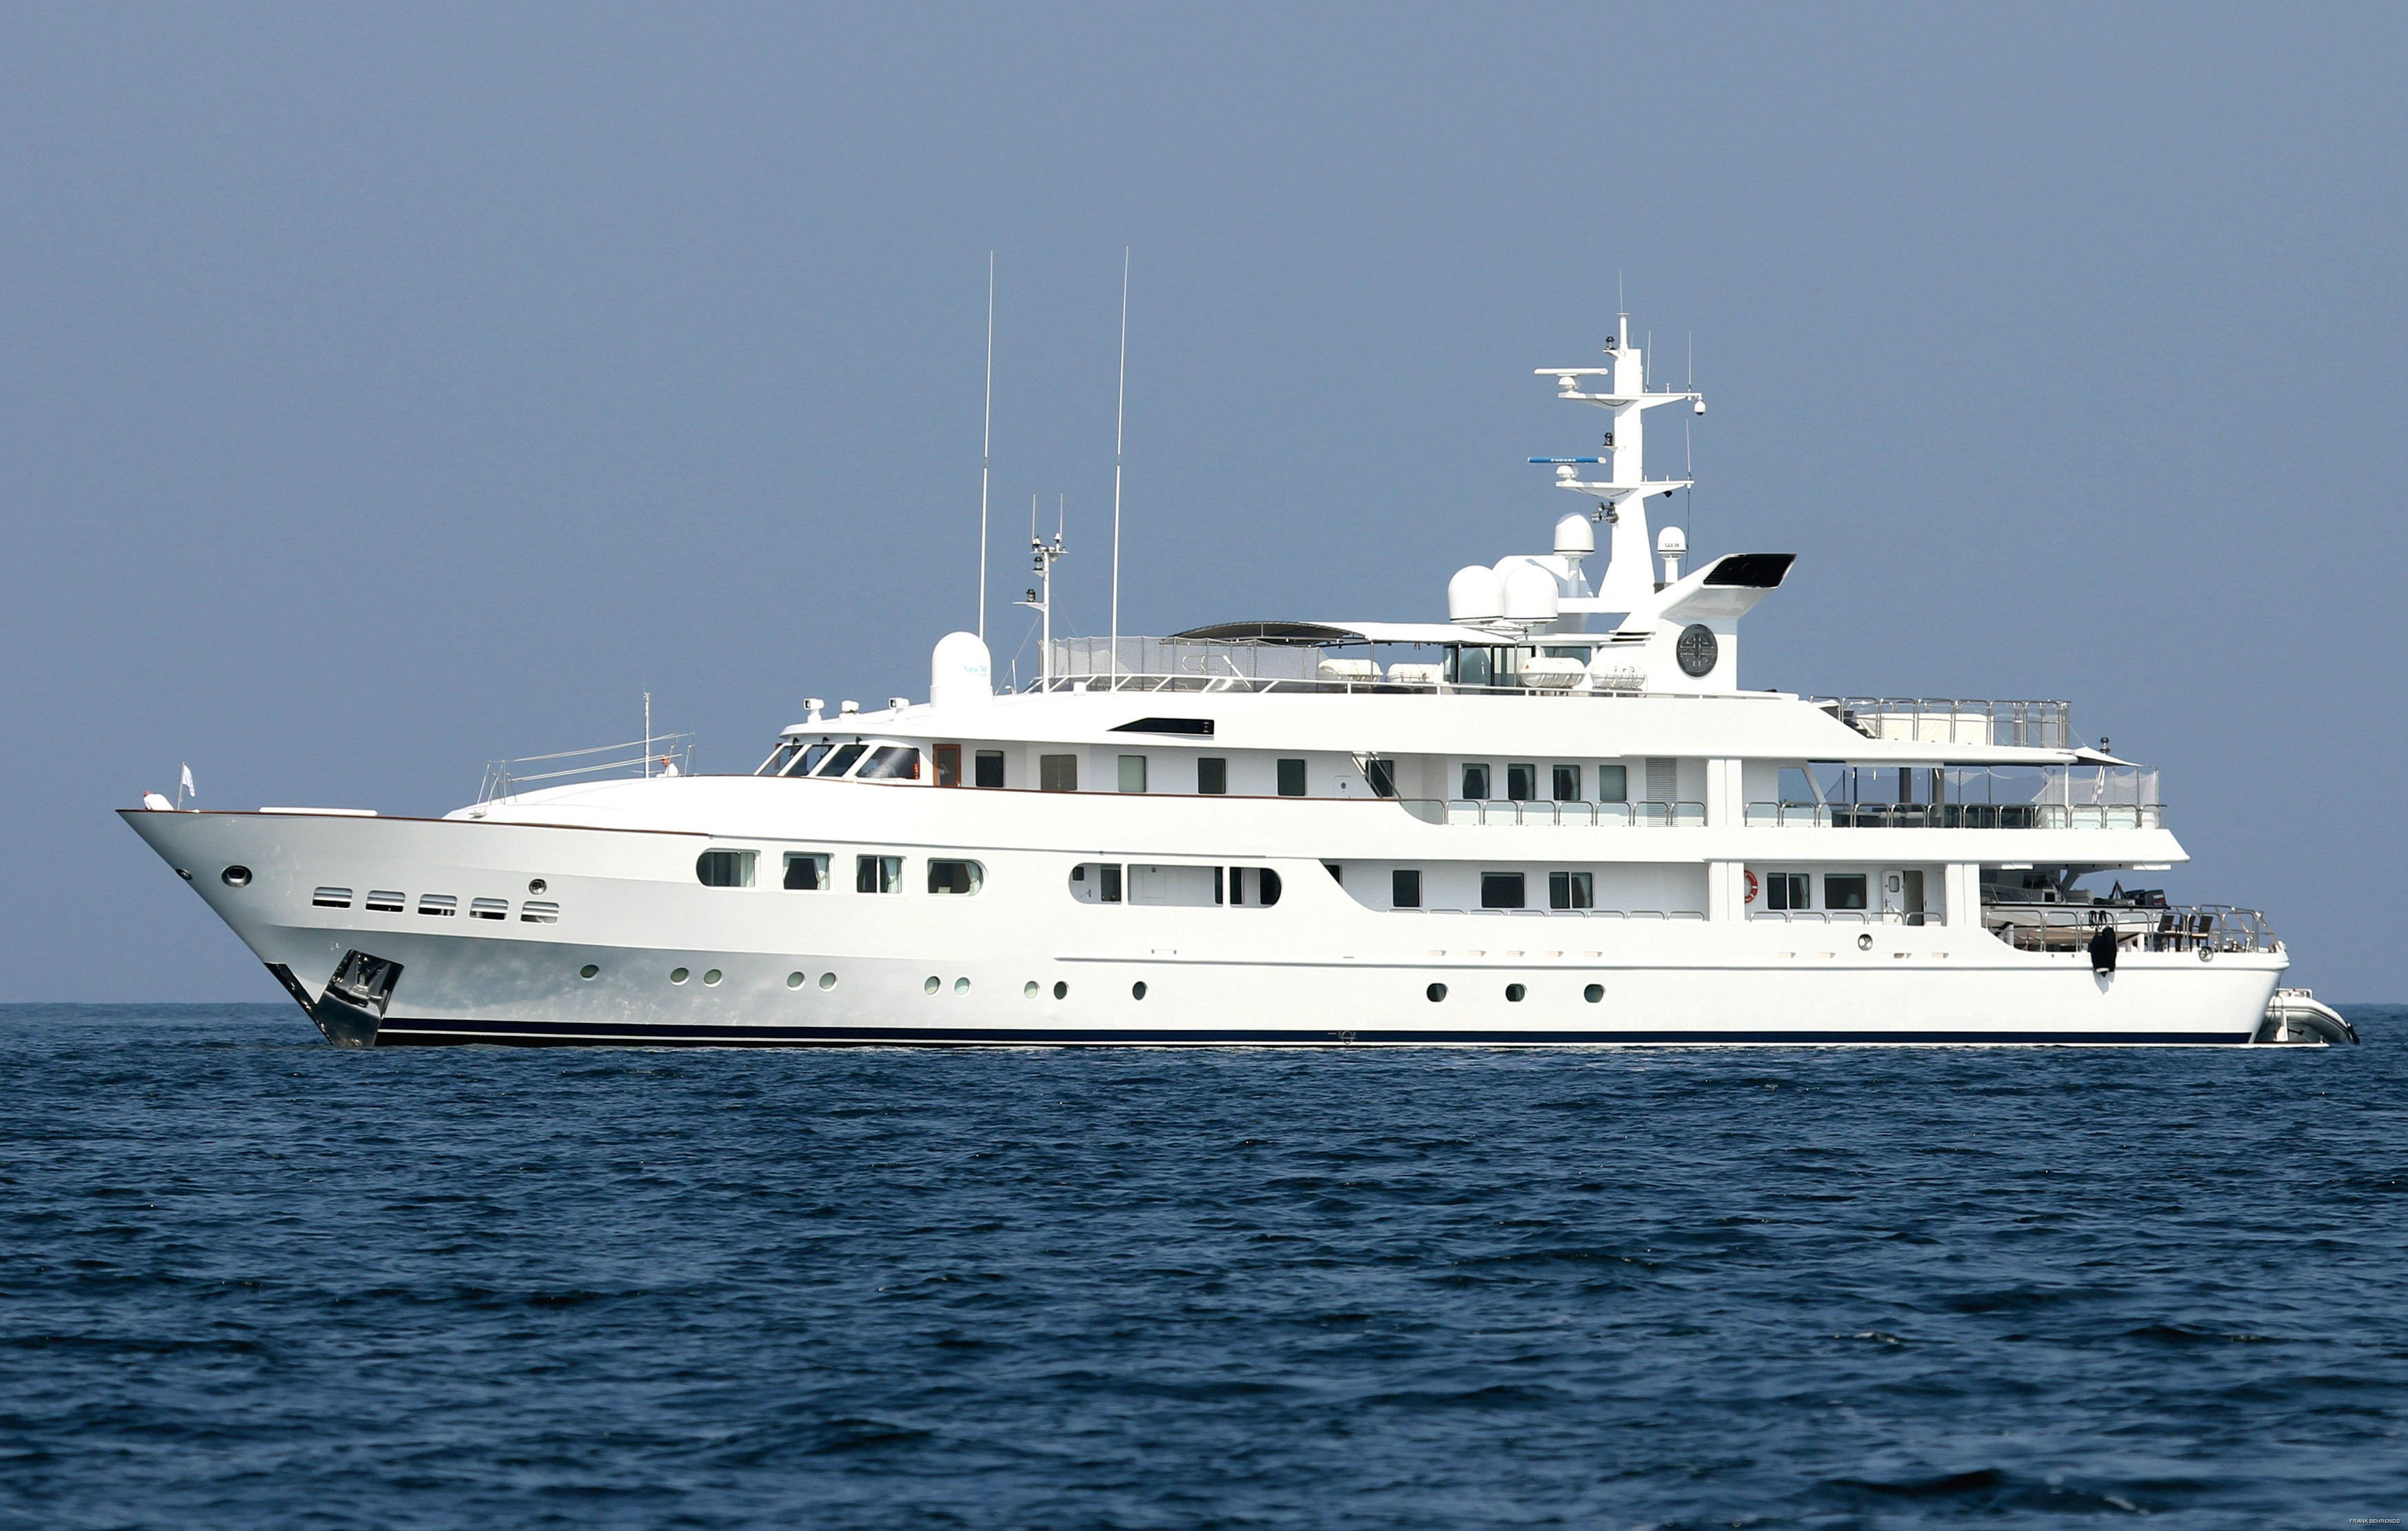 Premier Overview On Yacht MAGNA GRECIA